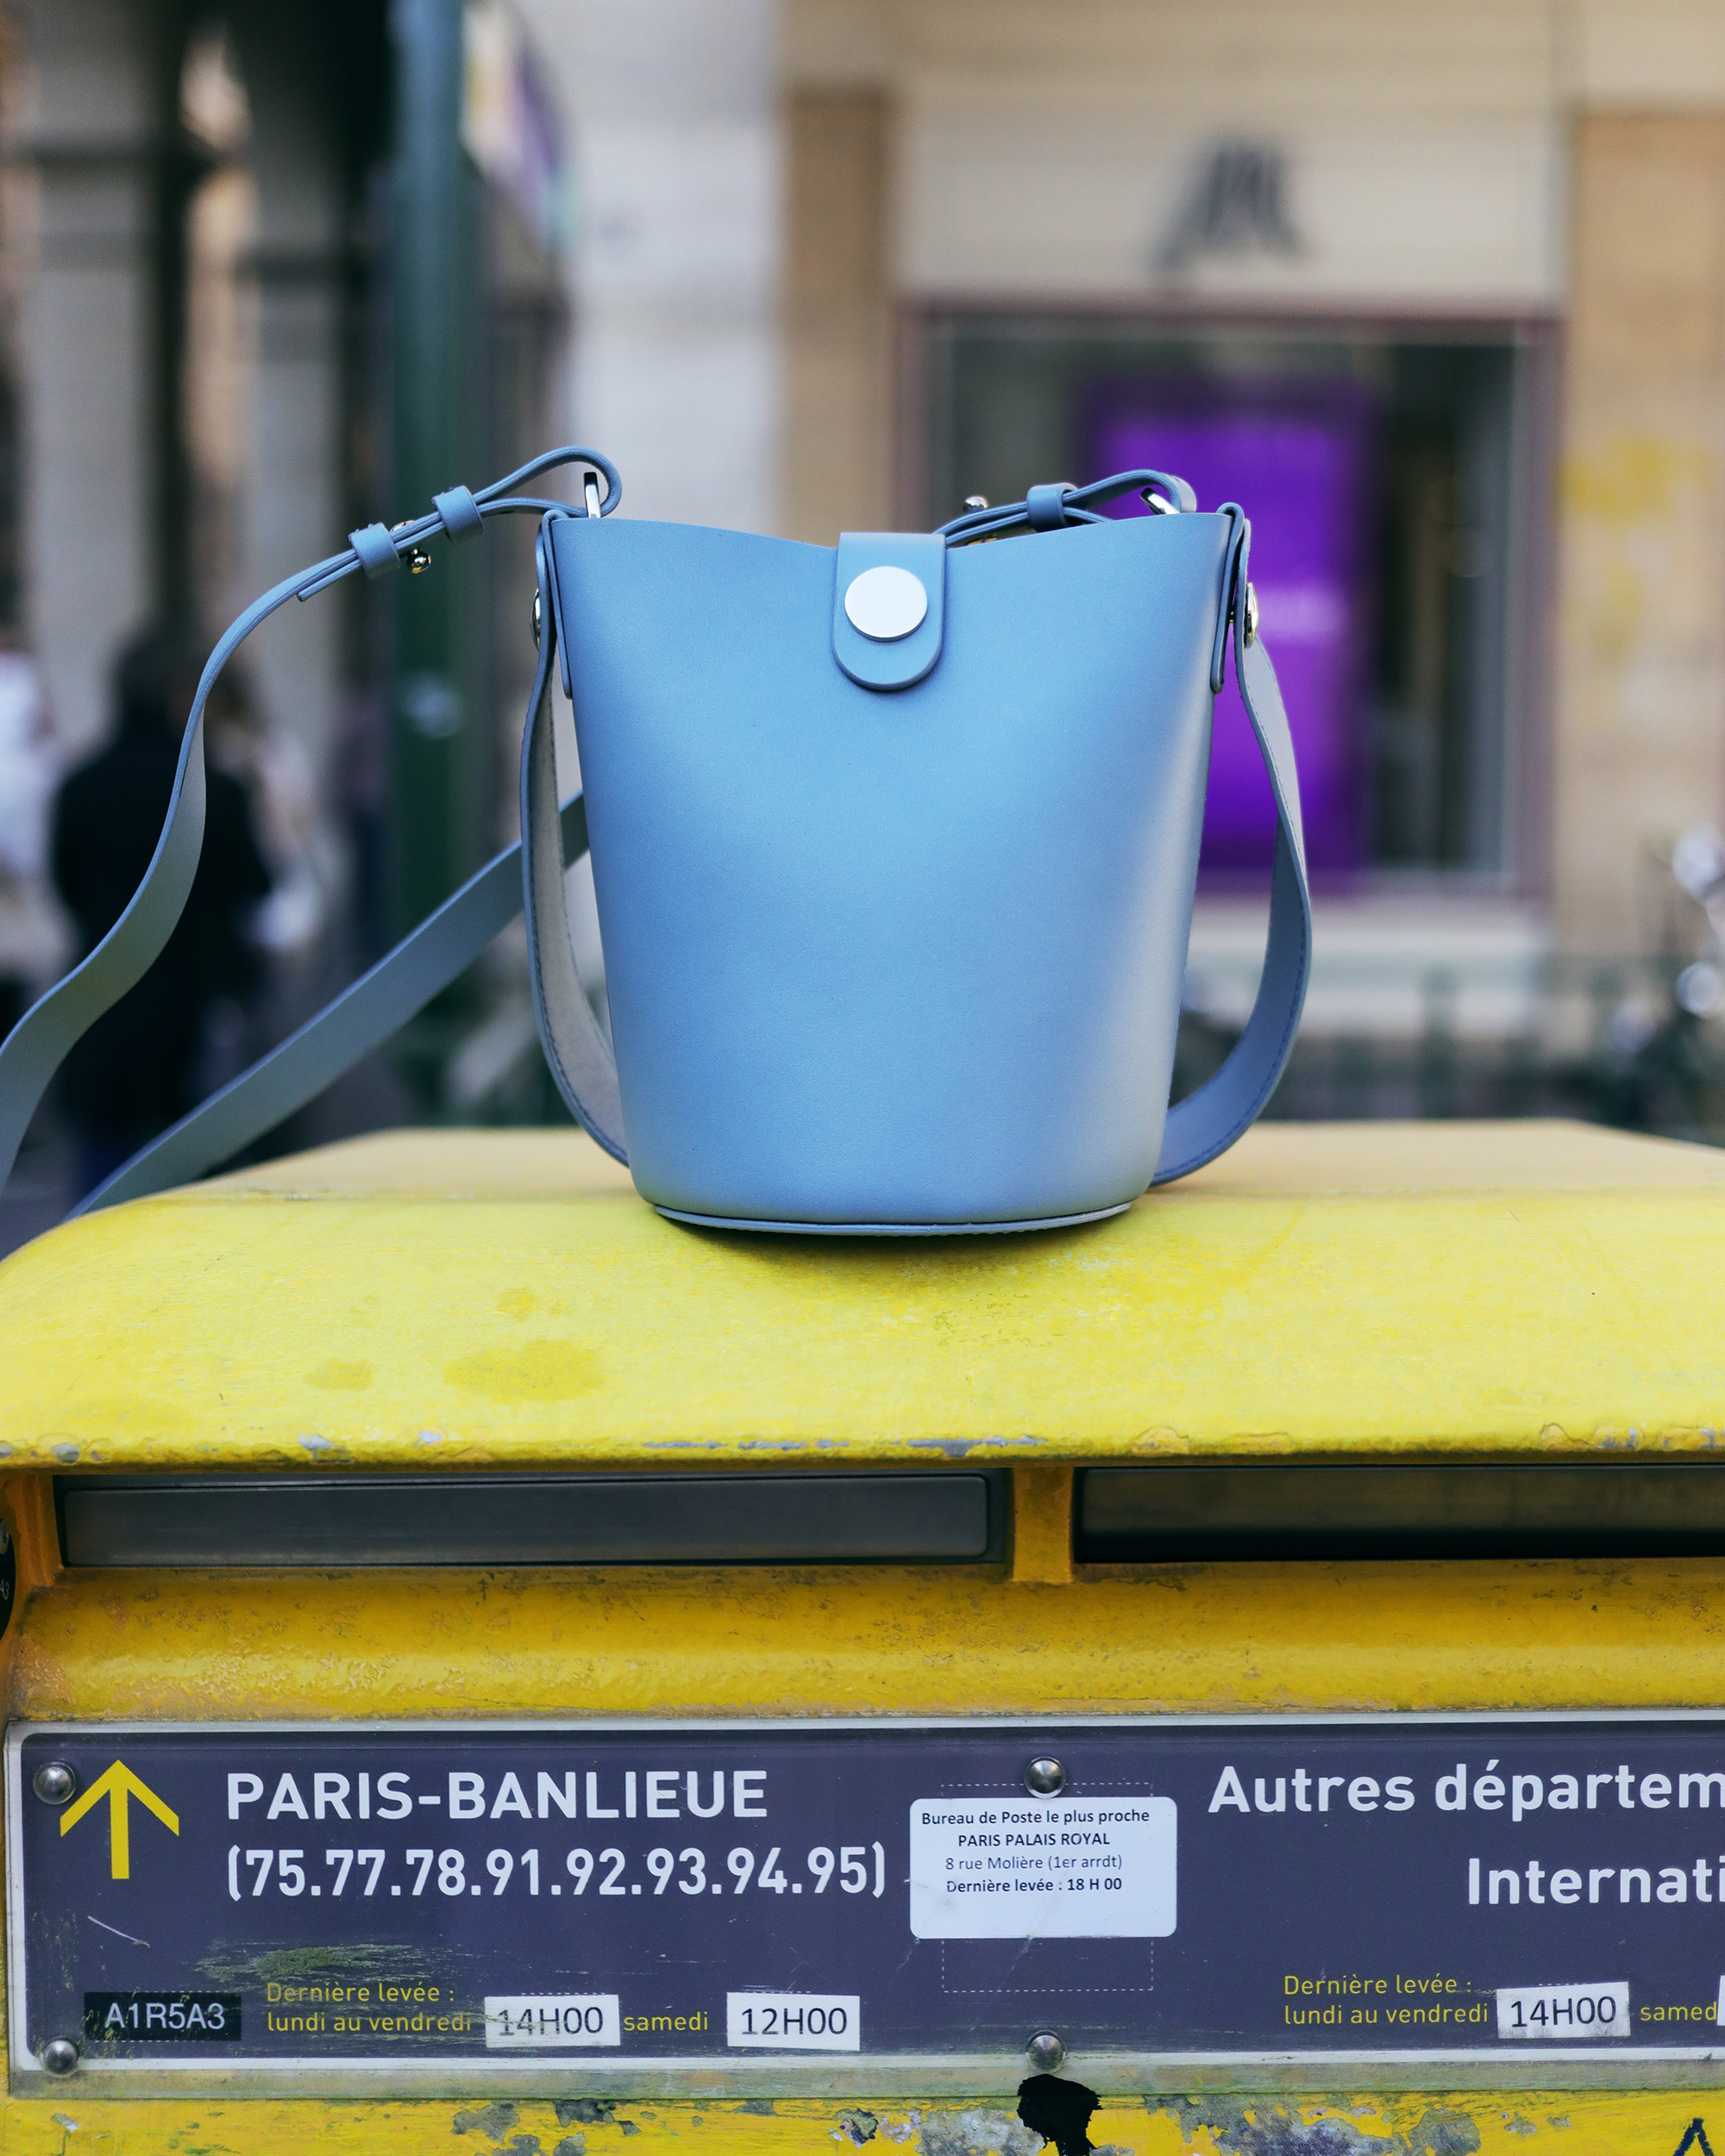 Paris Banlieue fashion handbag